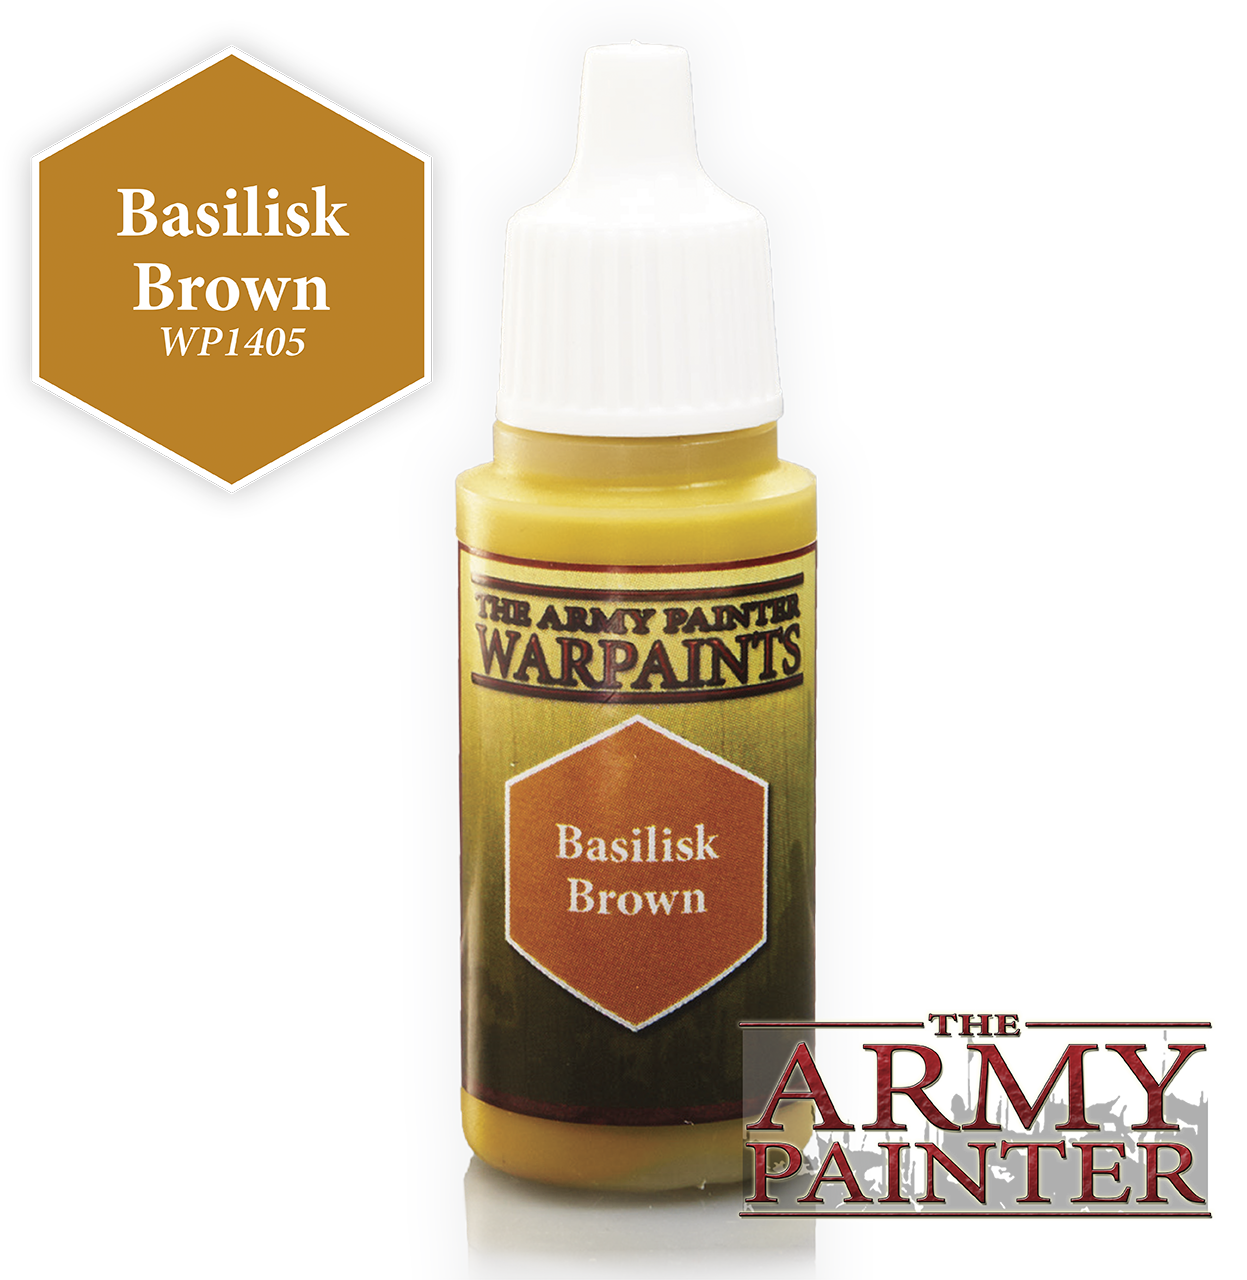 The ARMY PAINTER: Acrylics Warpaint - Basilisk Brown | Tacoma Games